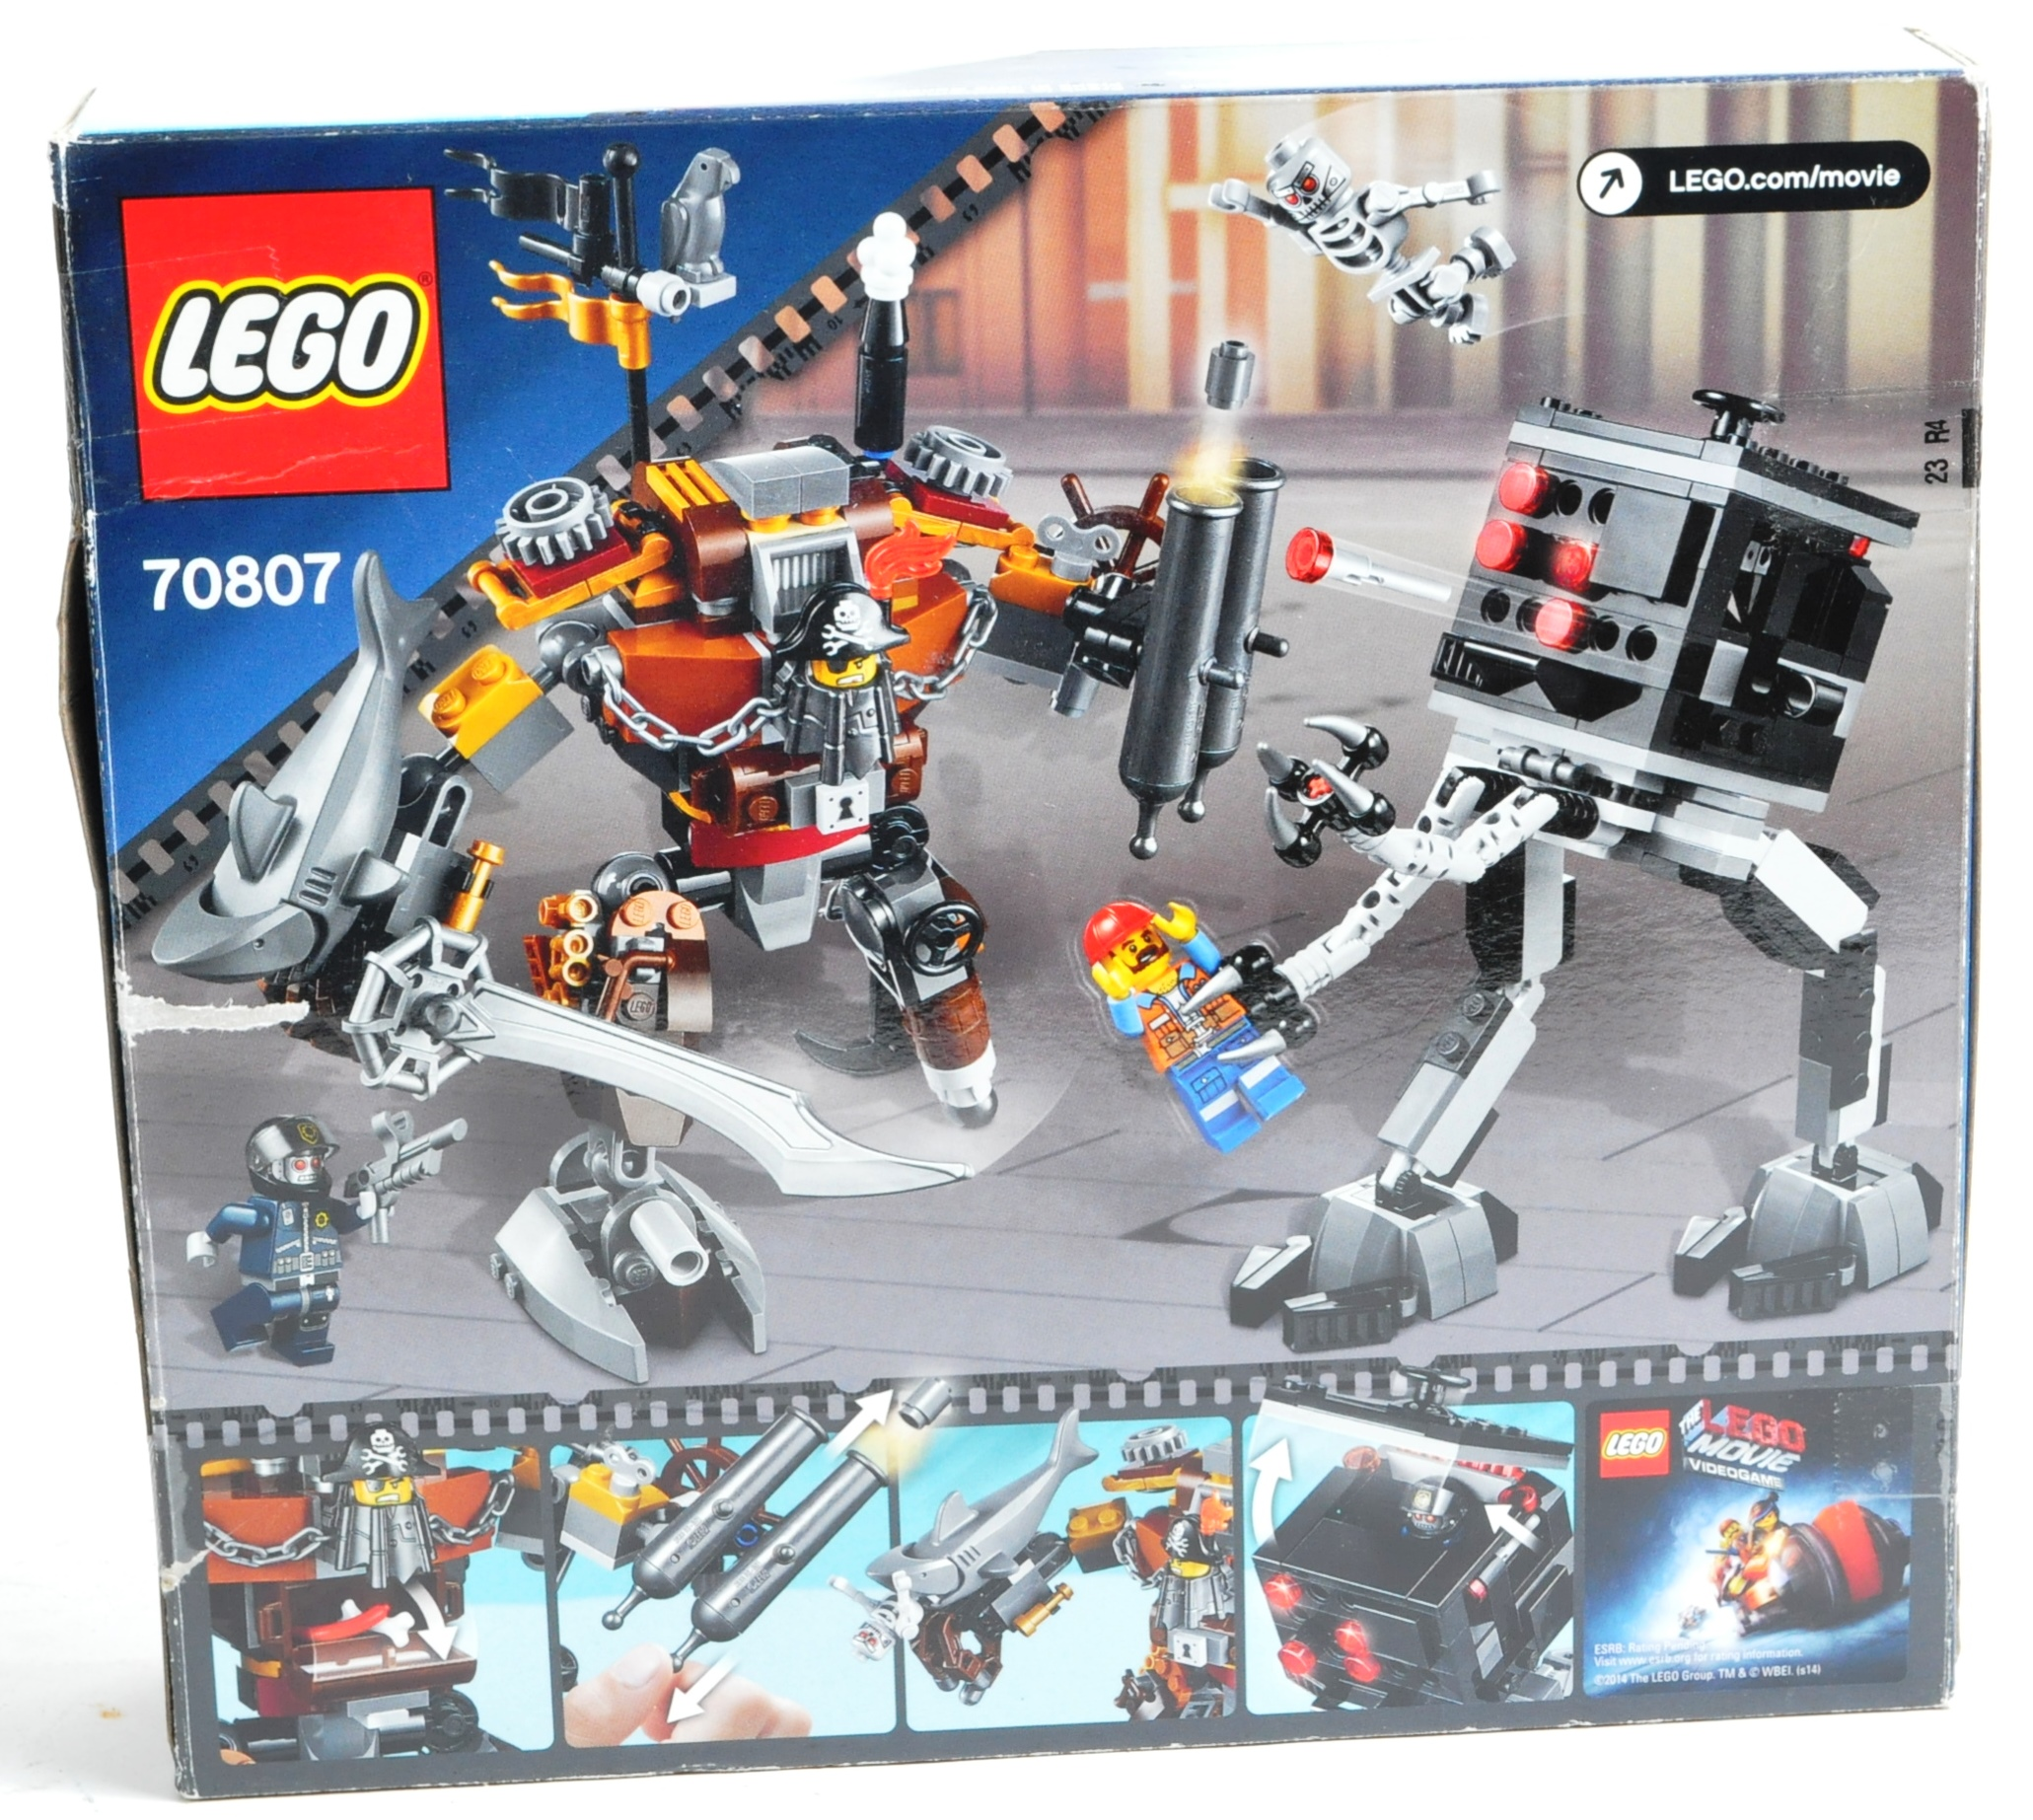 LEGO SETS - THE LEGO MOVIE - COLLECTION OF X7 LEGO MOVIE SETS - Image 13 of 17